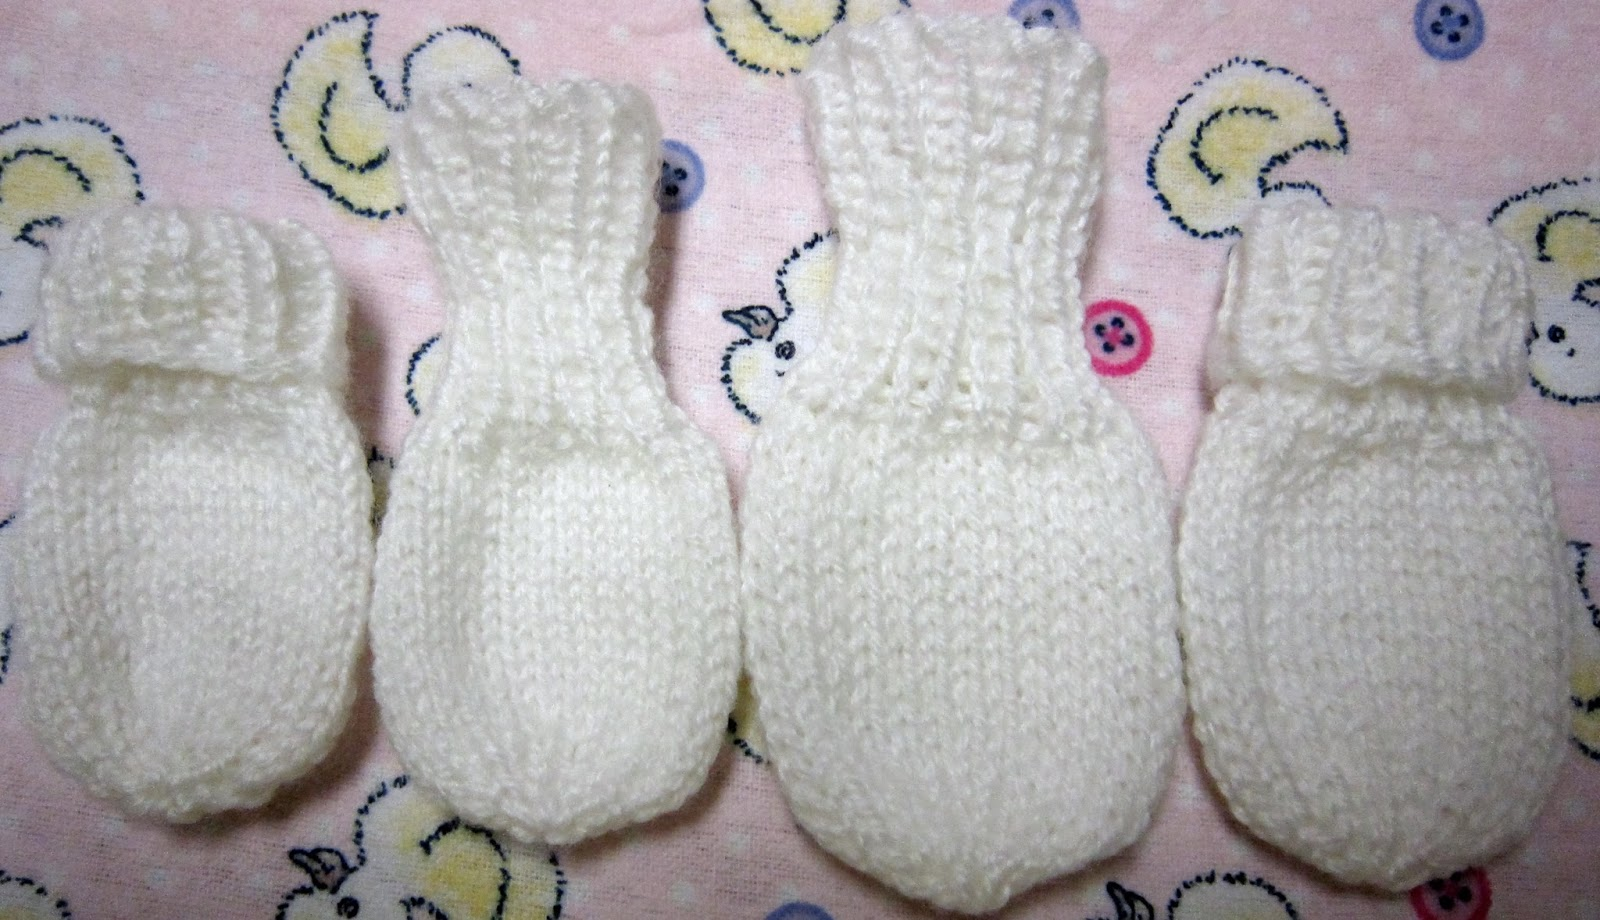 Knitting Patterns For Mittens For Premature Babies : Sea Trail Grandmas: FREE KNIT EASY PREEMIE MITTENS